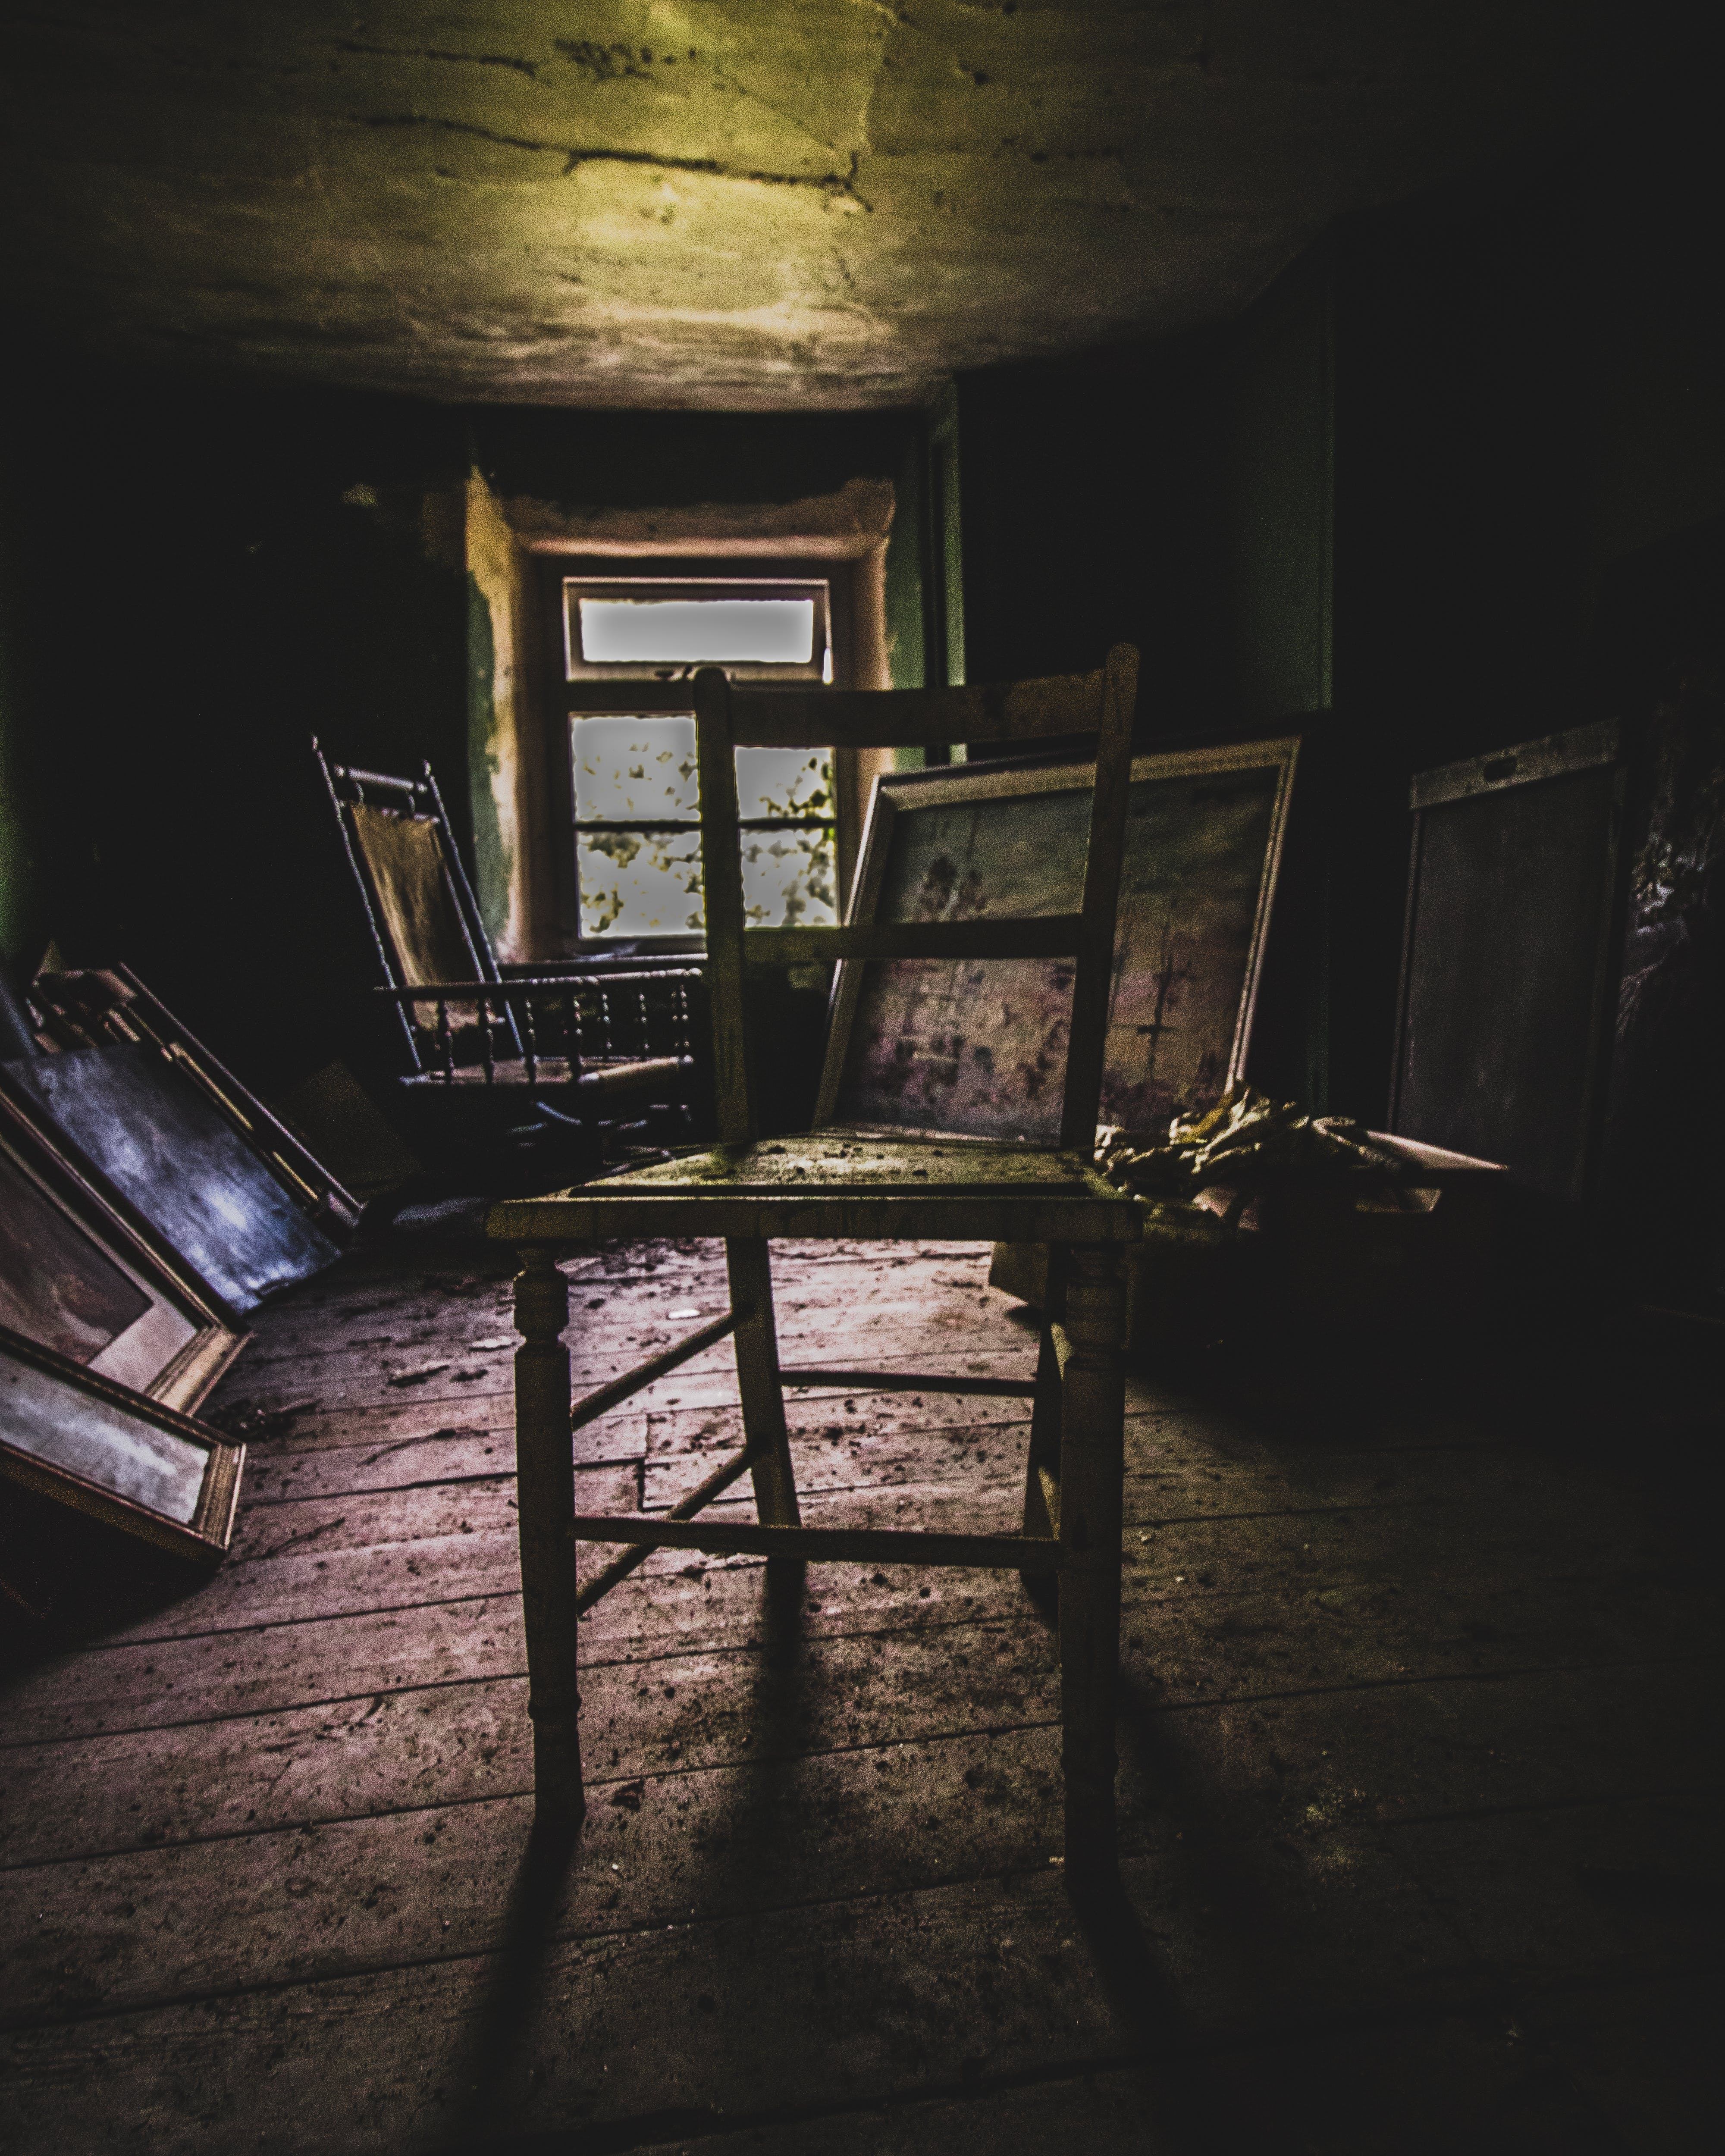 Free stock photo of abandoned, chair, urban